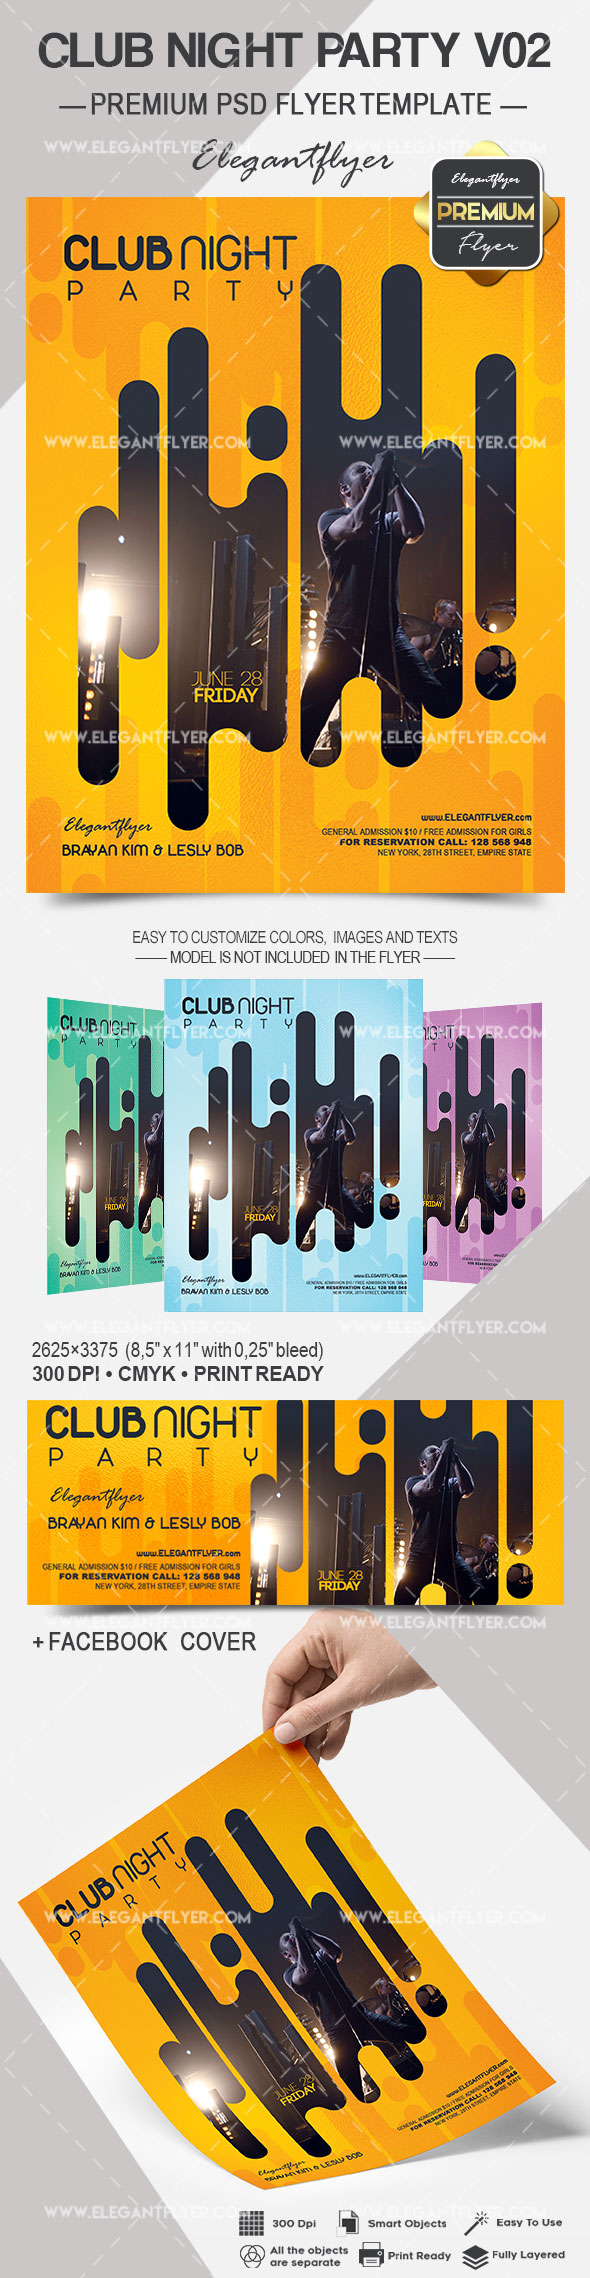 Club Night Party V02 – Premium Flyer PSD Template + Facebook Cover